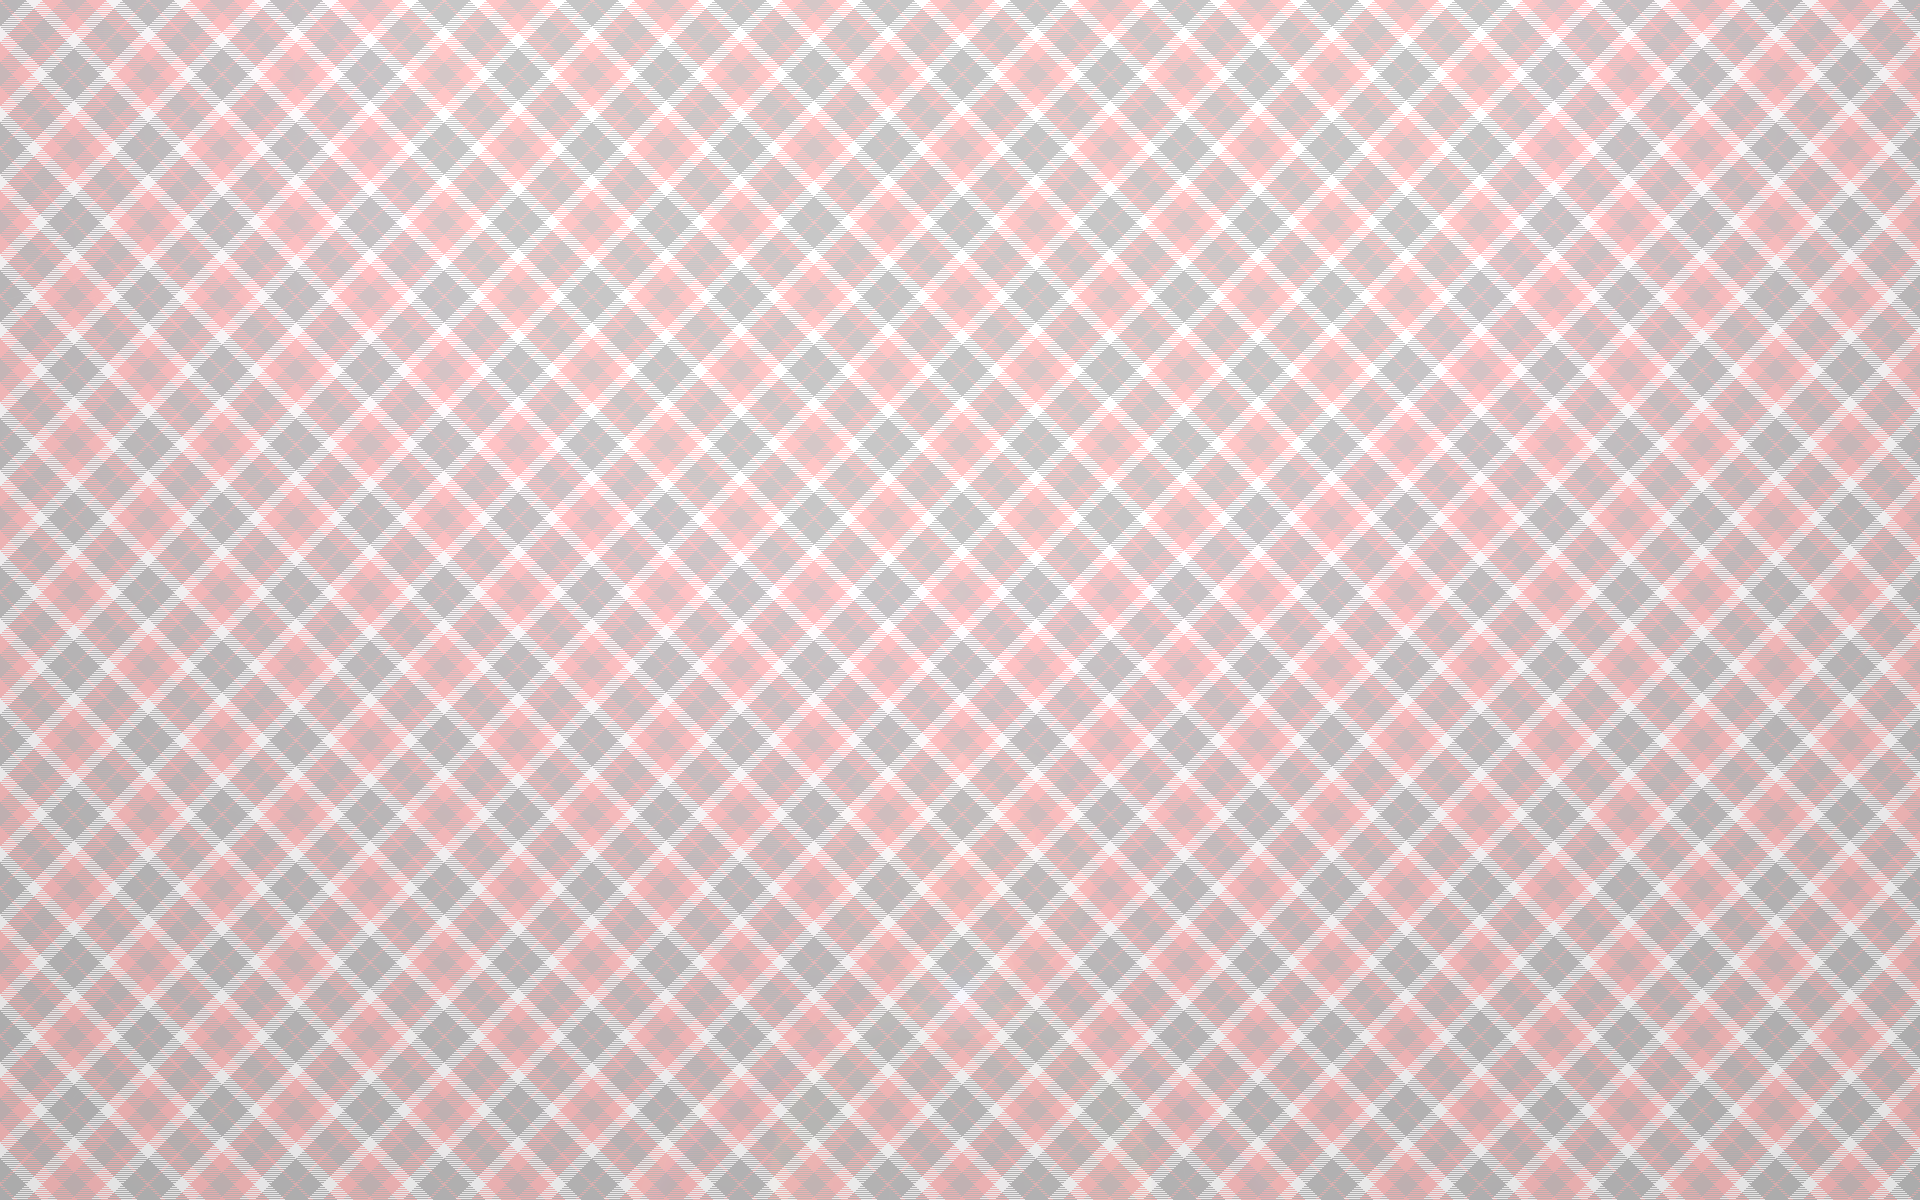 Simple pattern wallpaper 45186 1920x1200 px for Wallpaper design